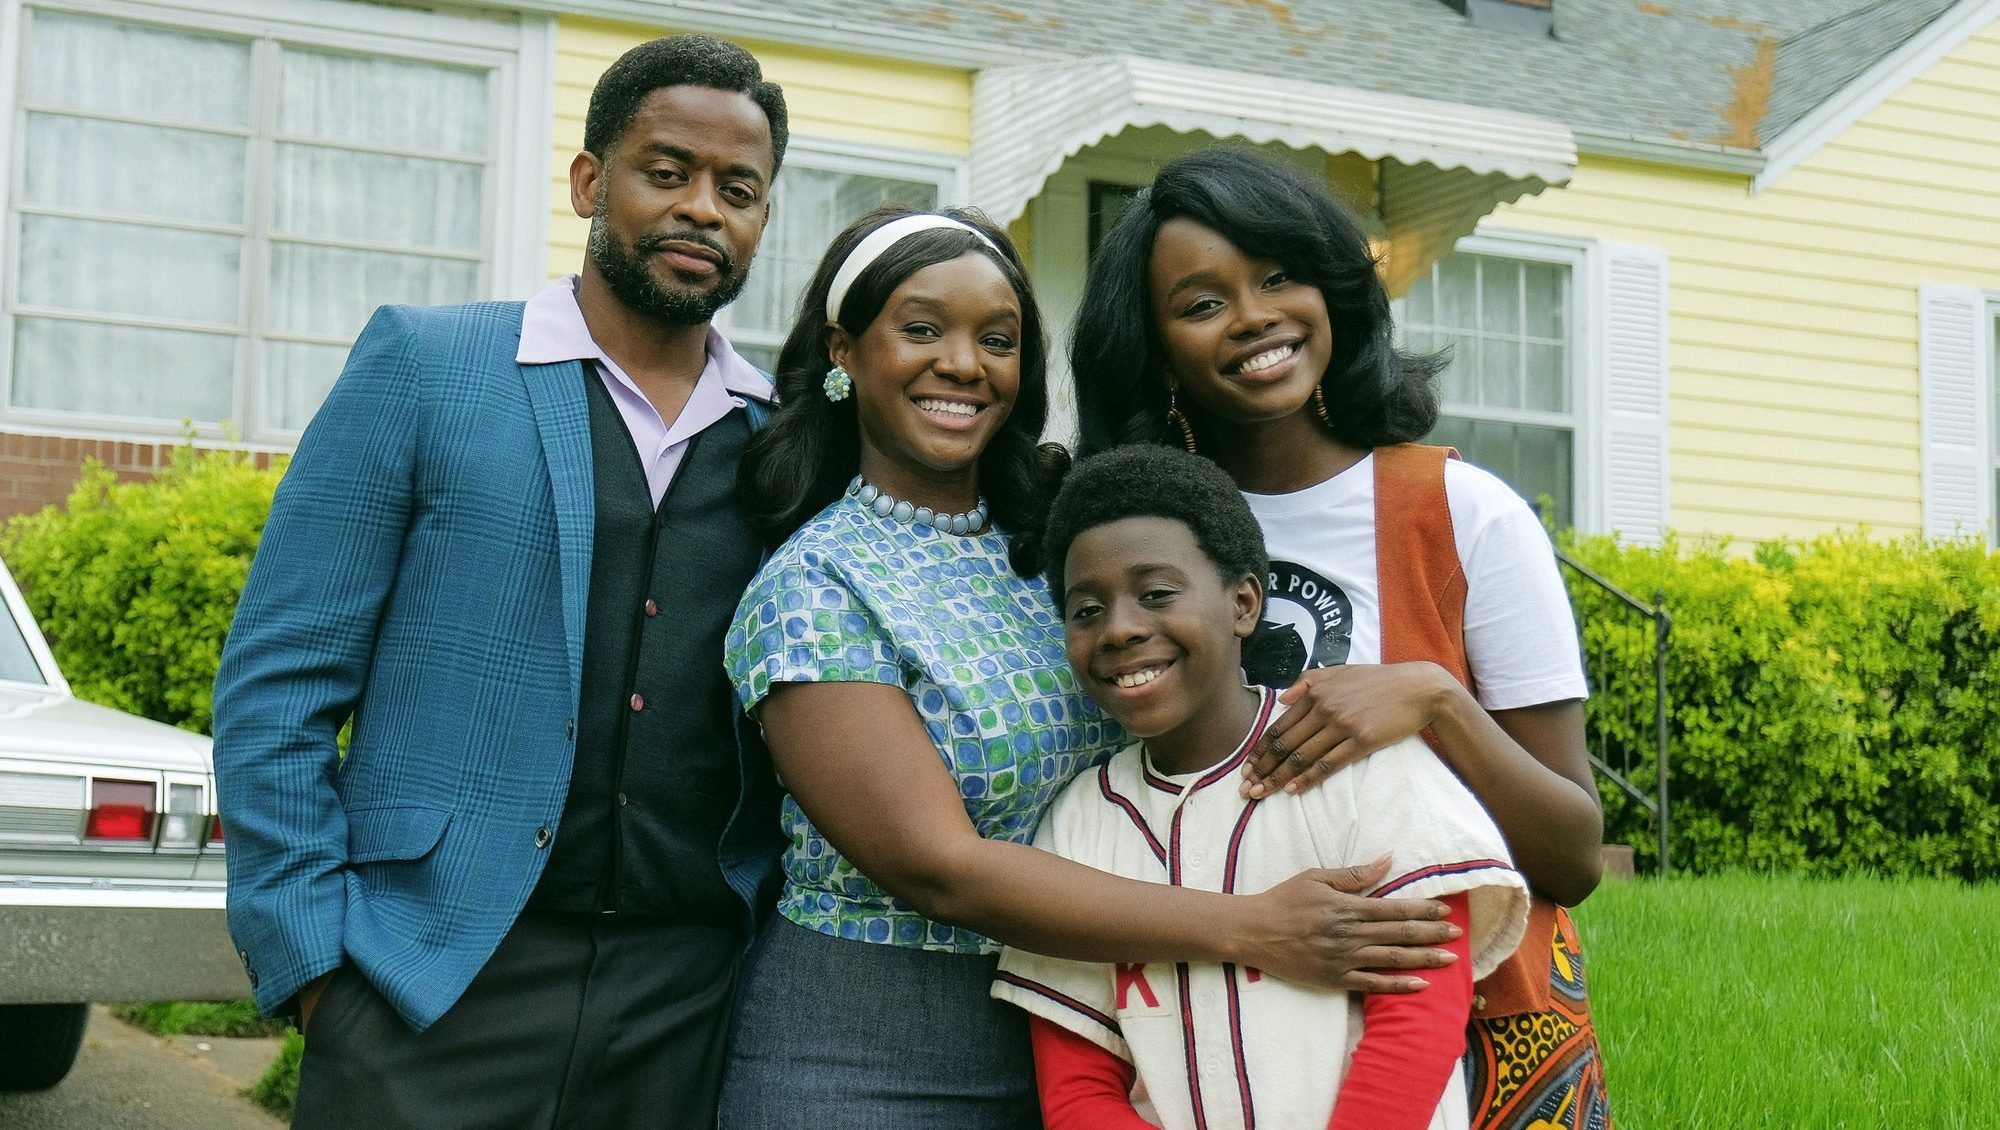 A Black Family Relives 'The Wonder Years' In ABC Reboot, Don Cheadle Narrates